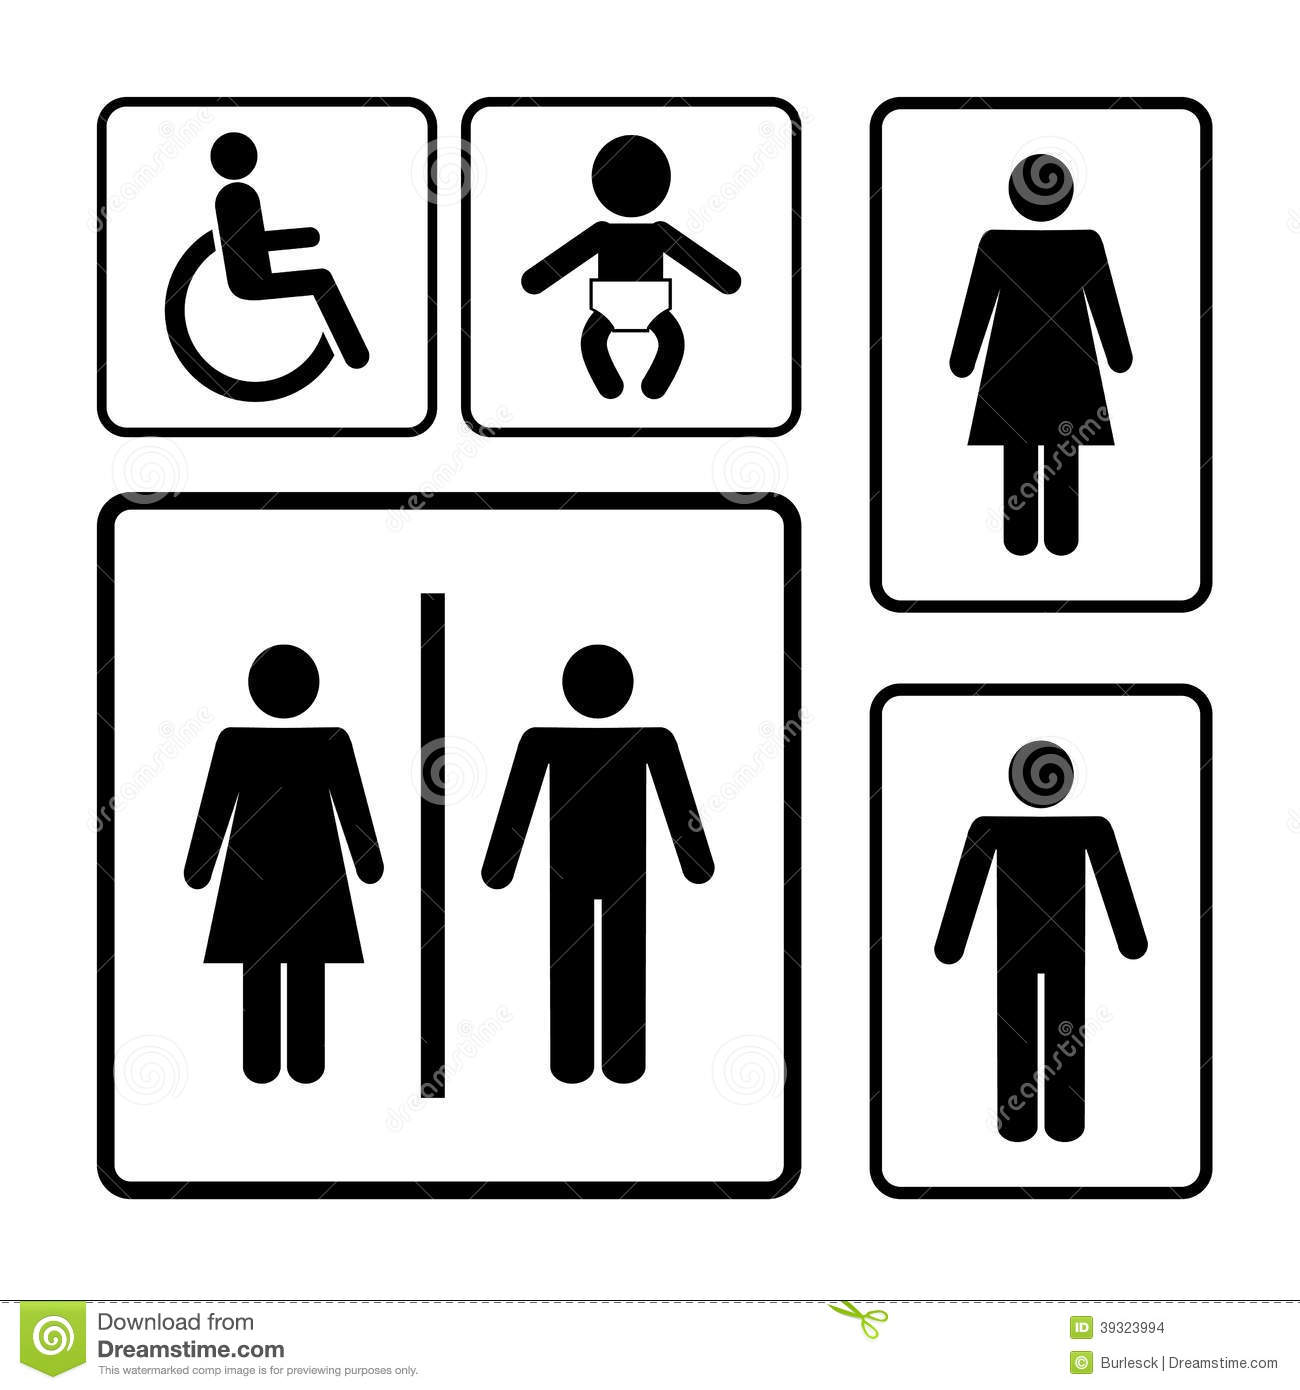 restroom signs stock vector illustration of girl icon 39323994 rh dreamstime com Printable Restroom Signs Men Only Restroom Signs